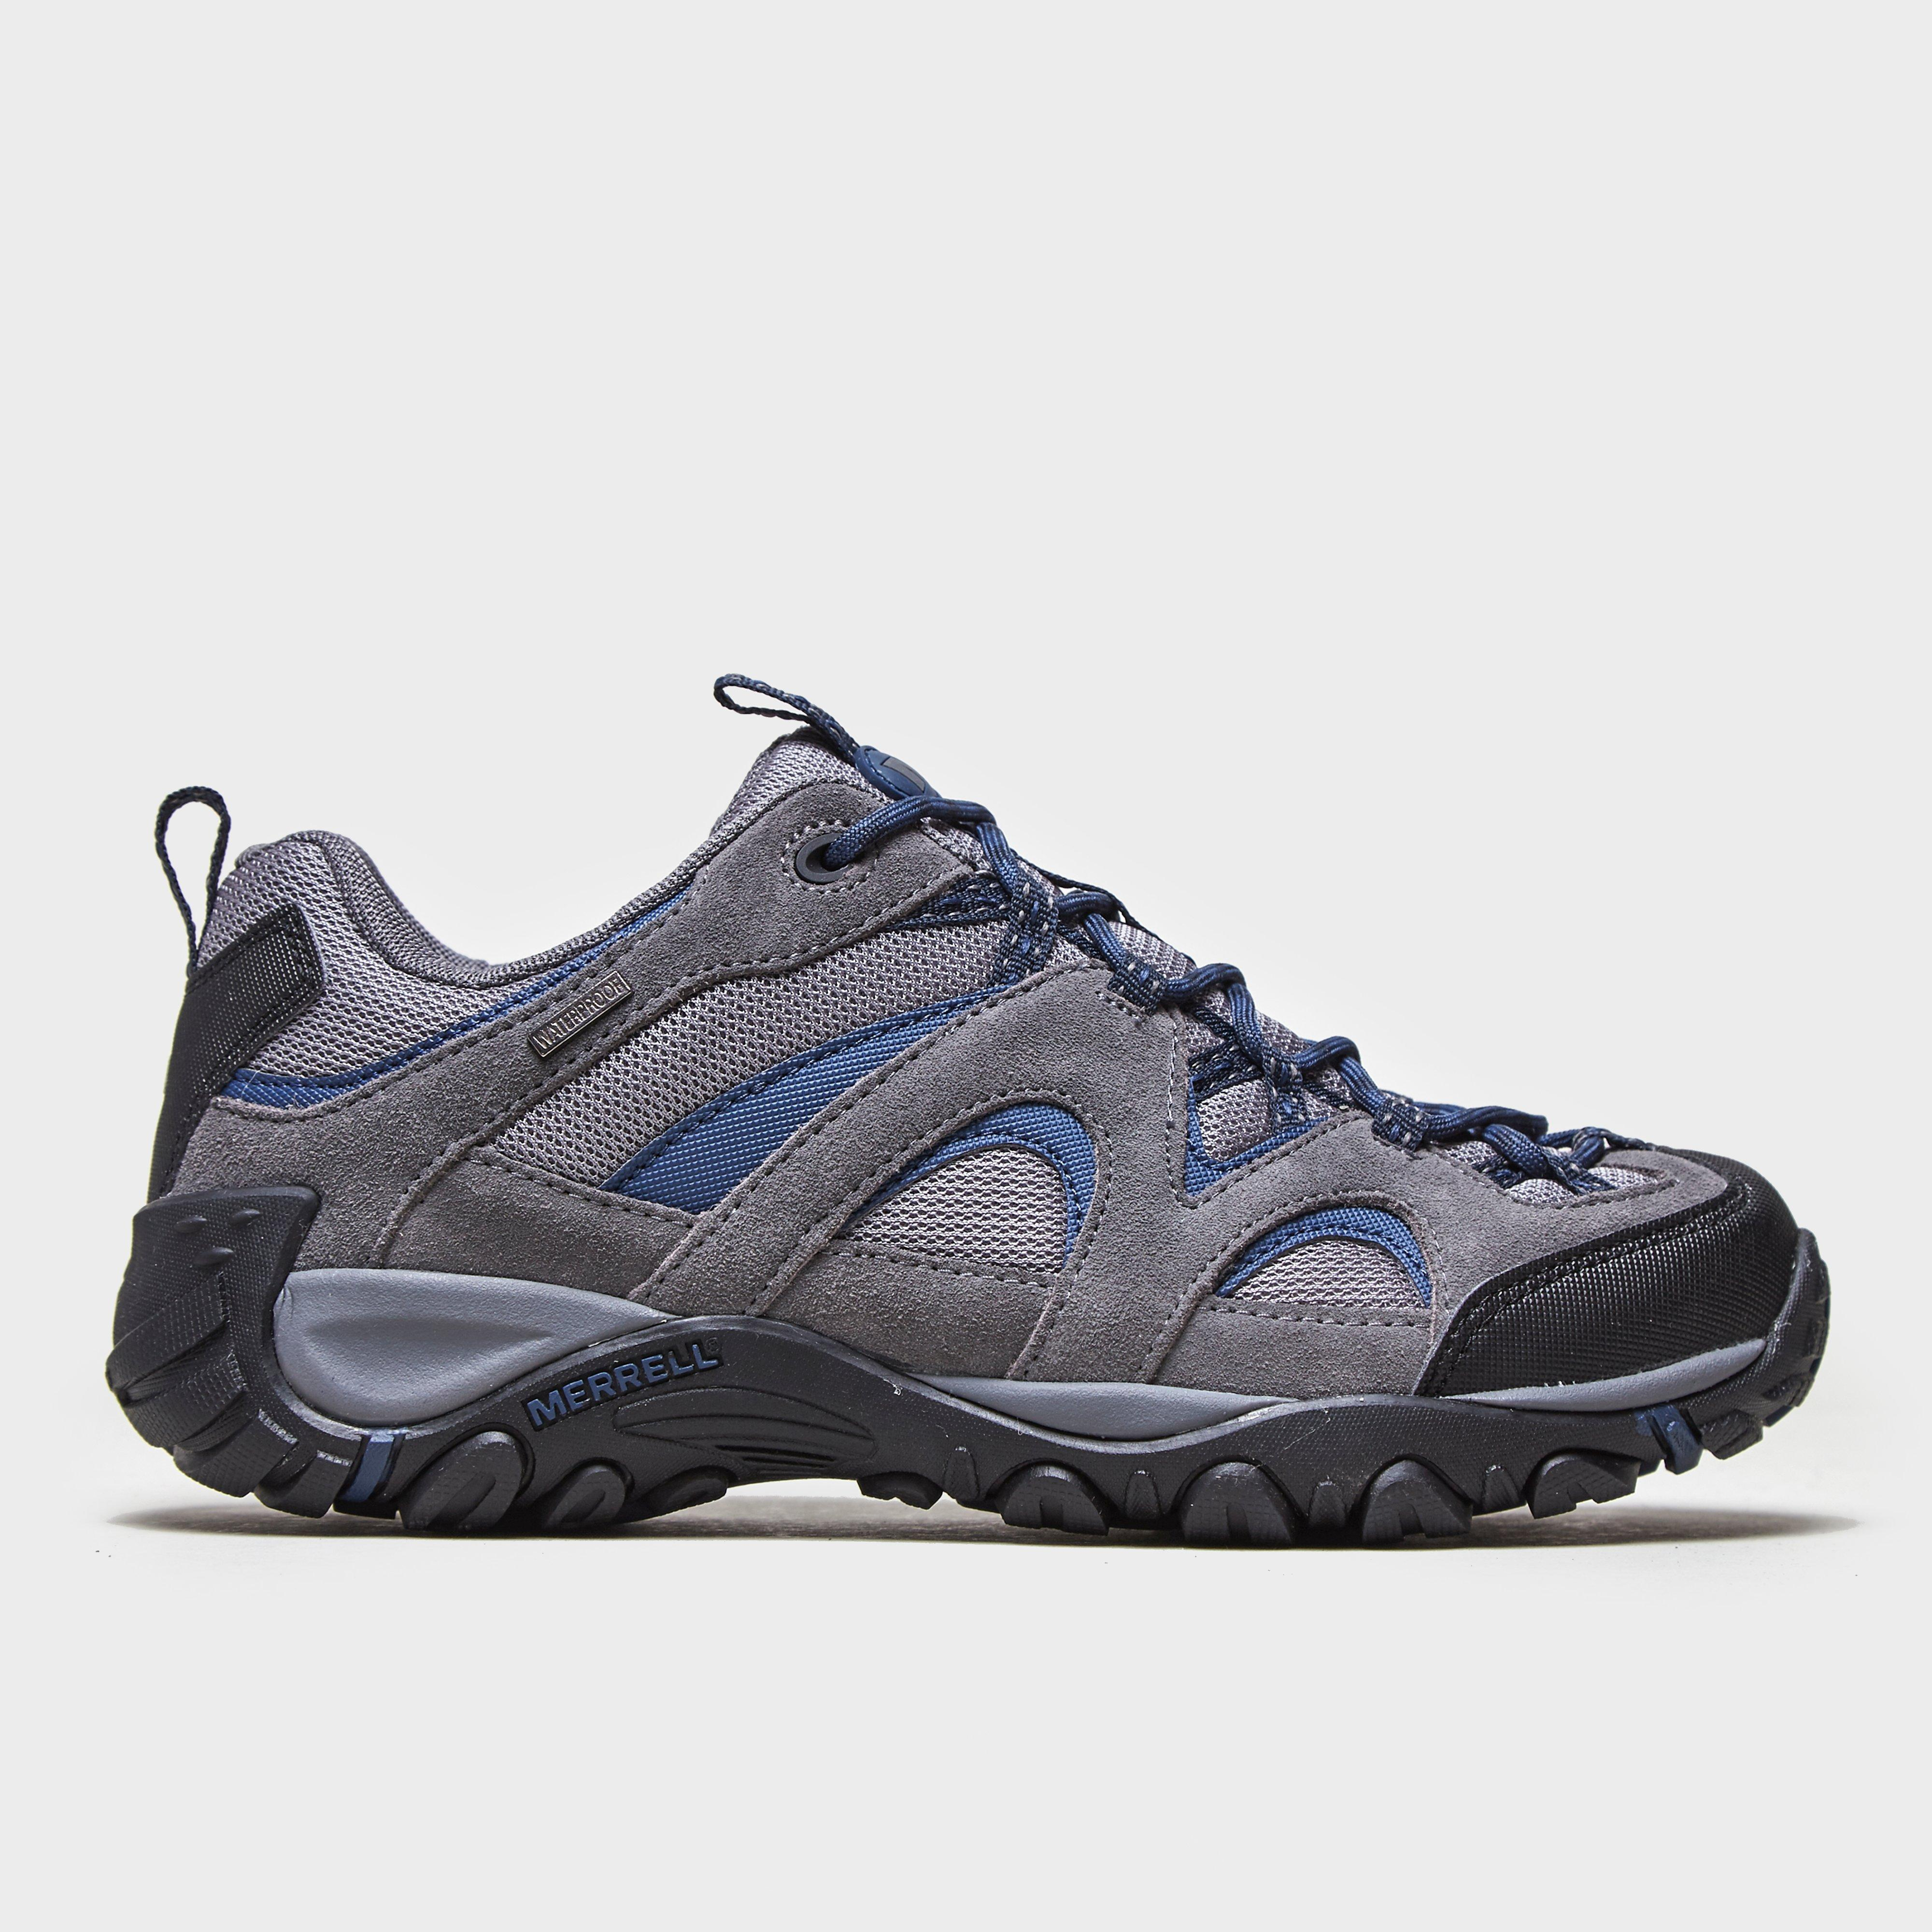 952ae5177c61 Grey MERRELL Men s Energis Waterproof Walking Shoe image 1